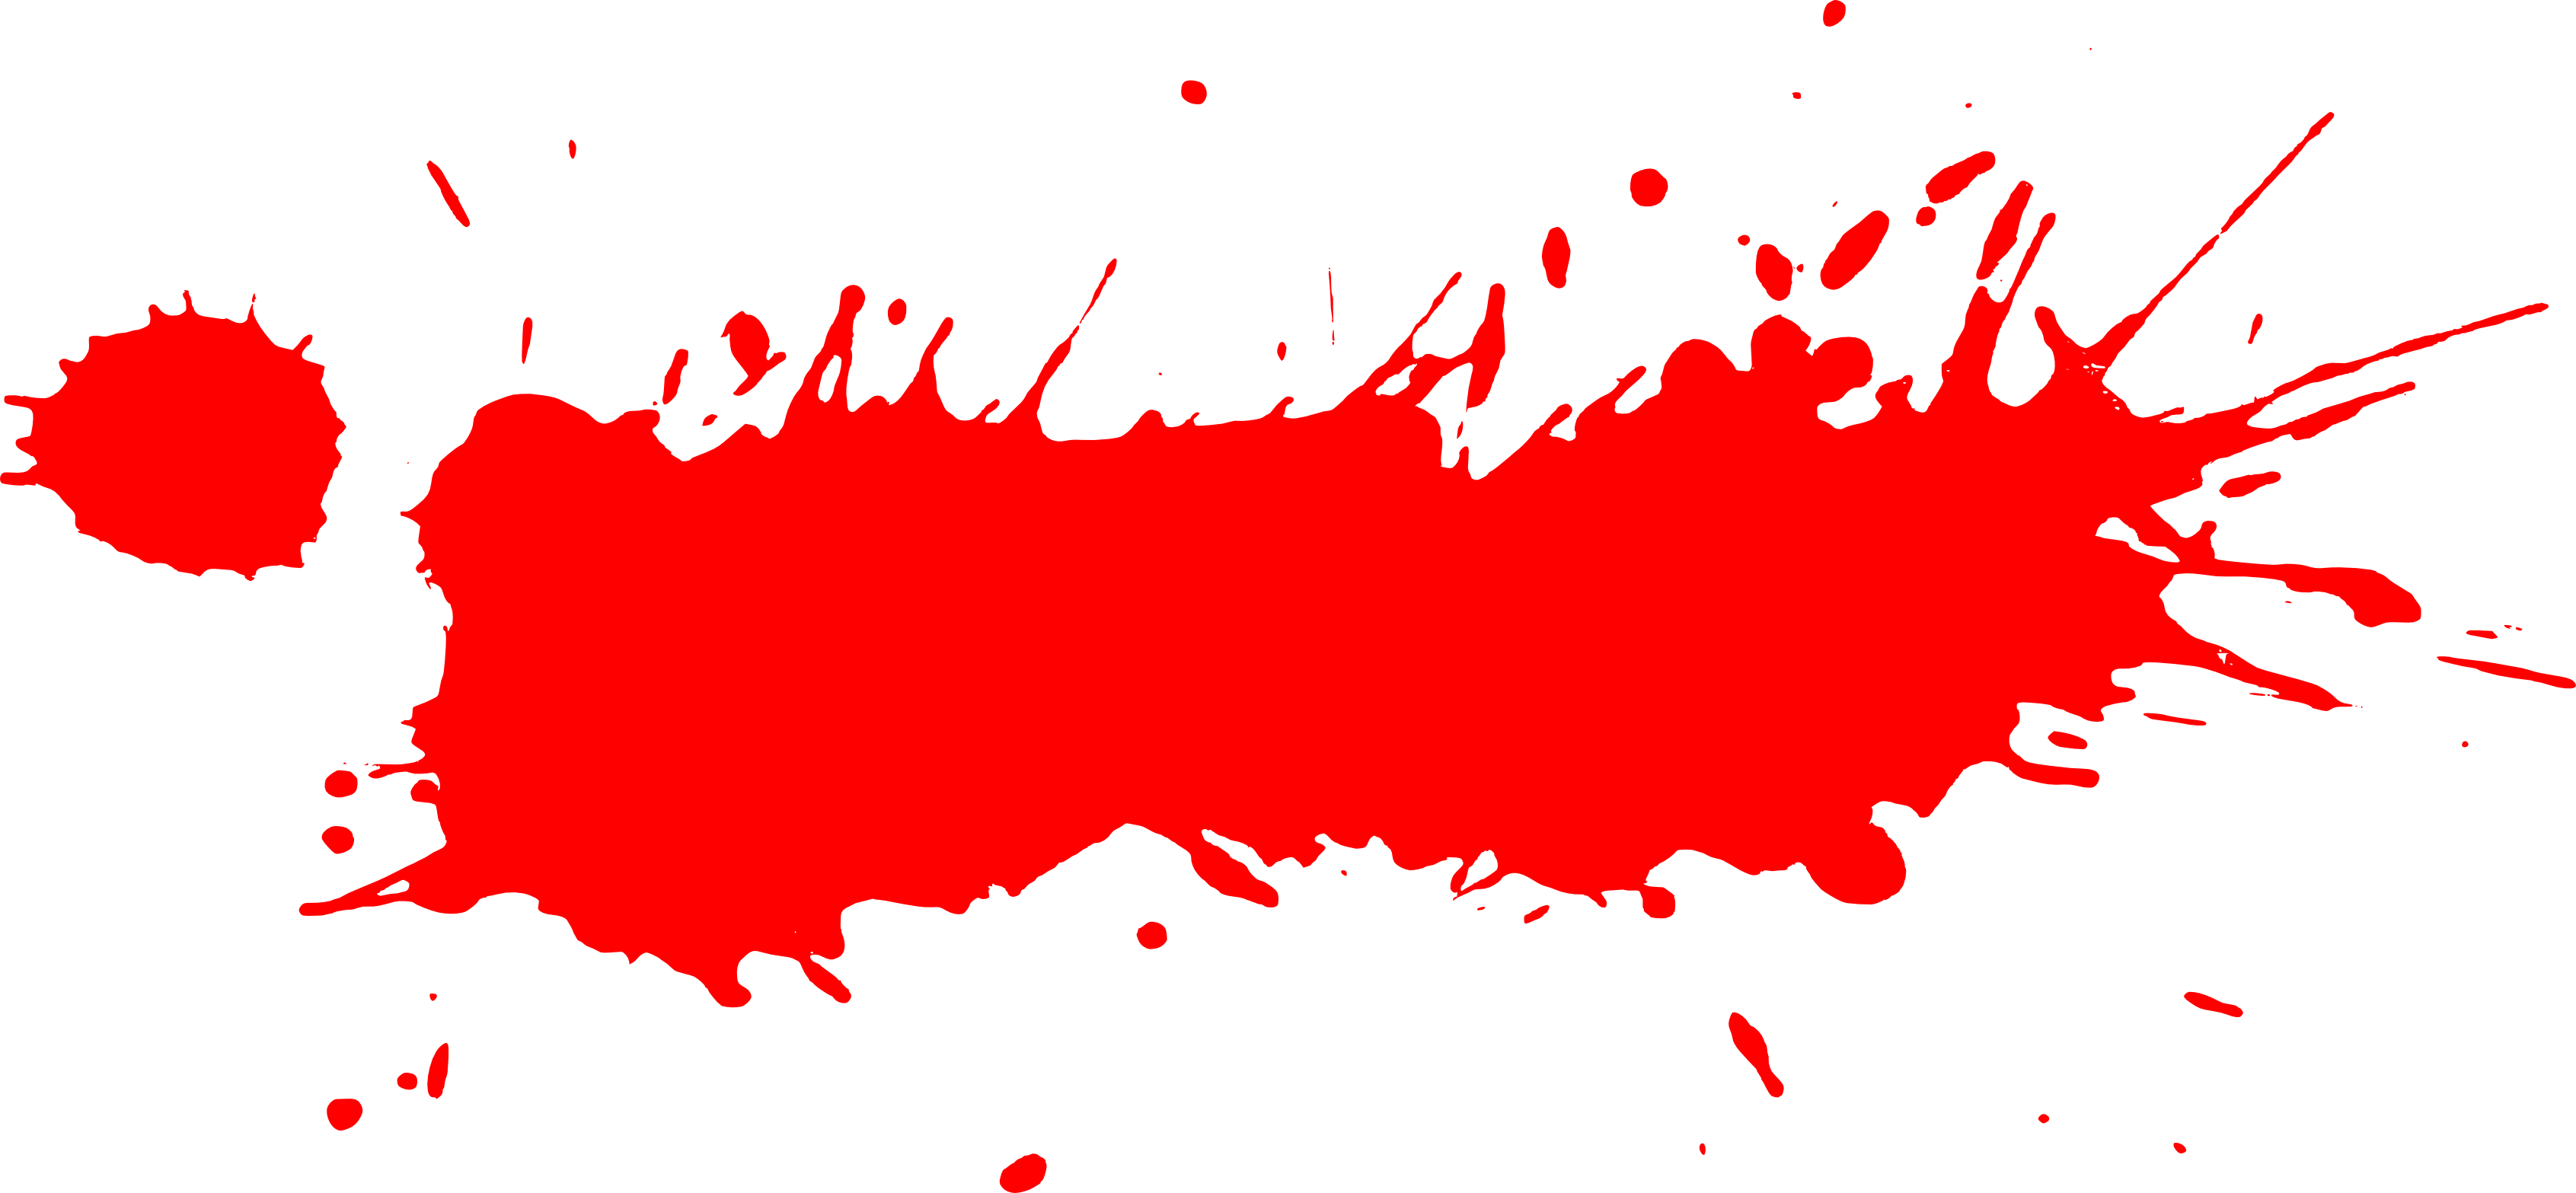 Red paint splat png. Free photo splats splatter